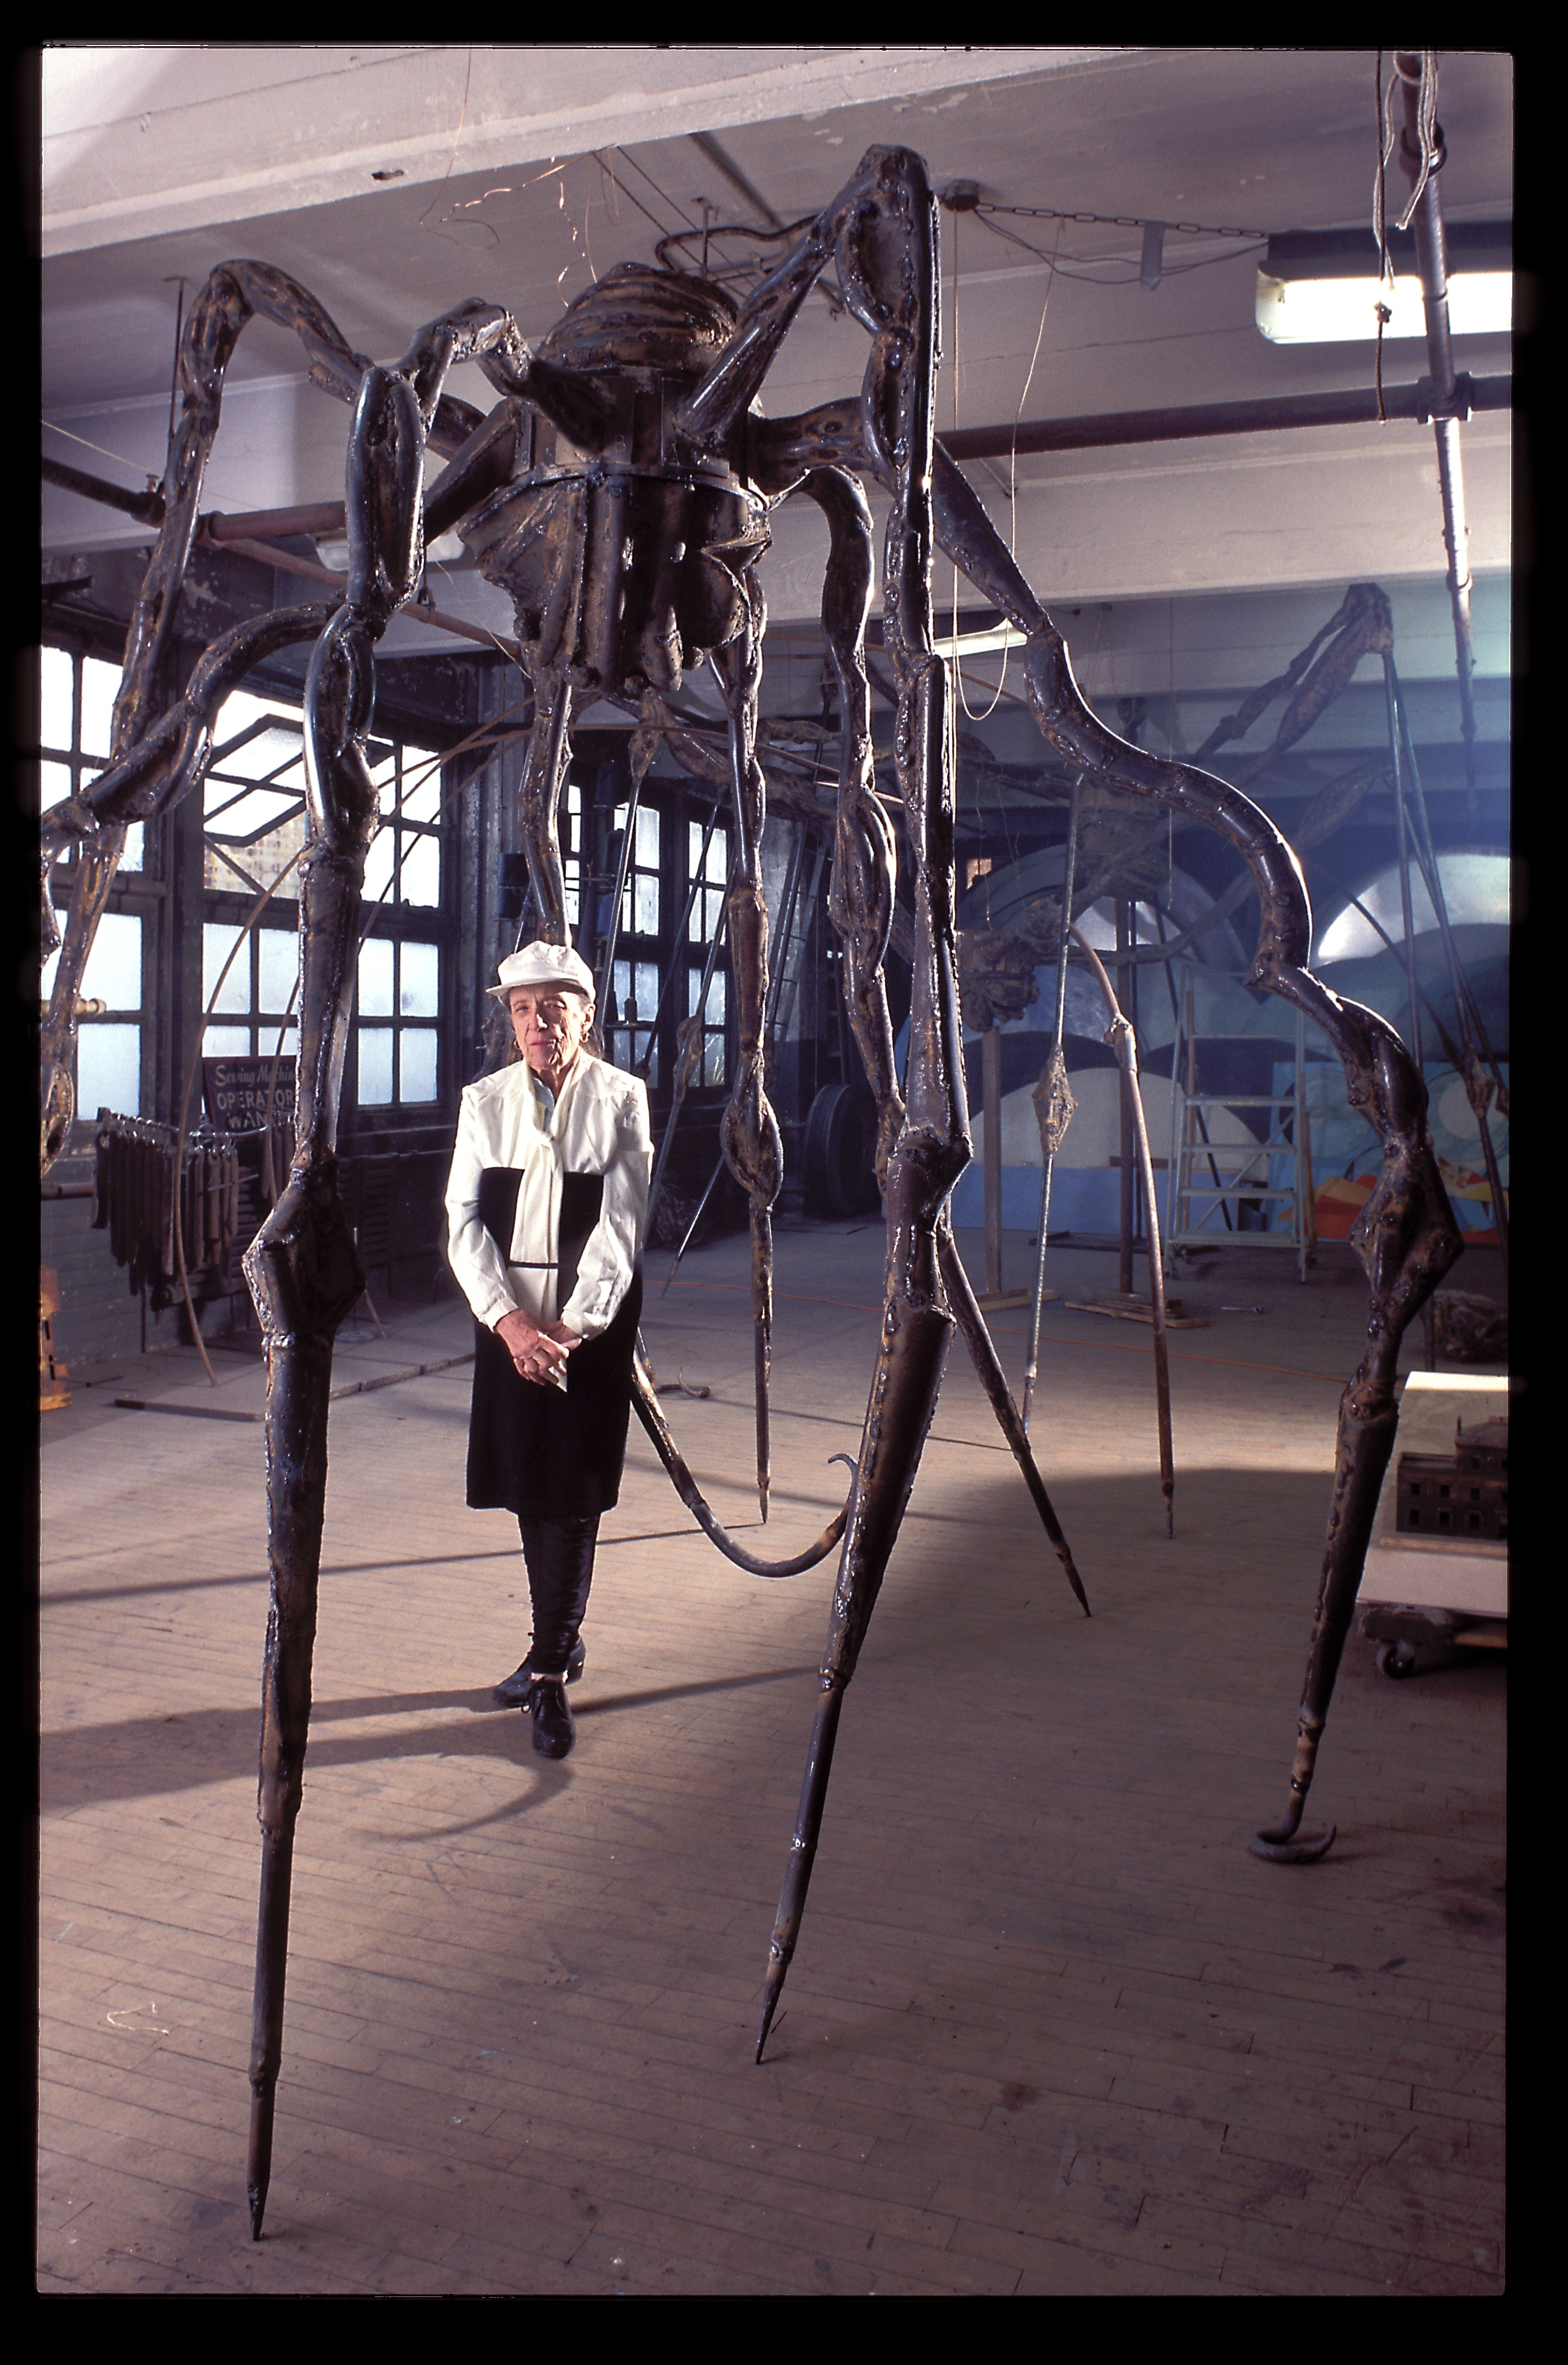 Avec Maman, 1995, ©-Jean-François-Jaussaud With the spider that made her most famous